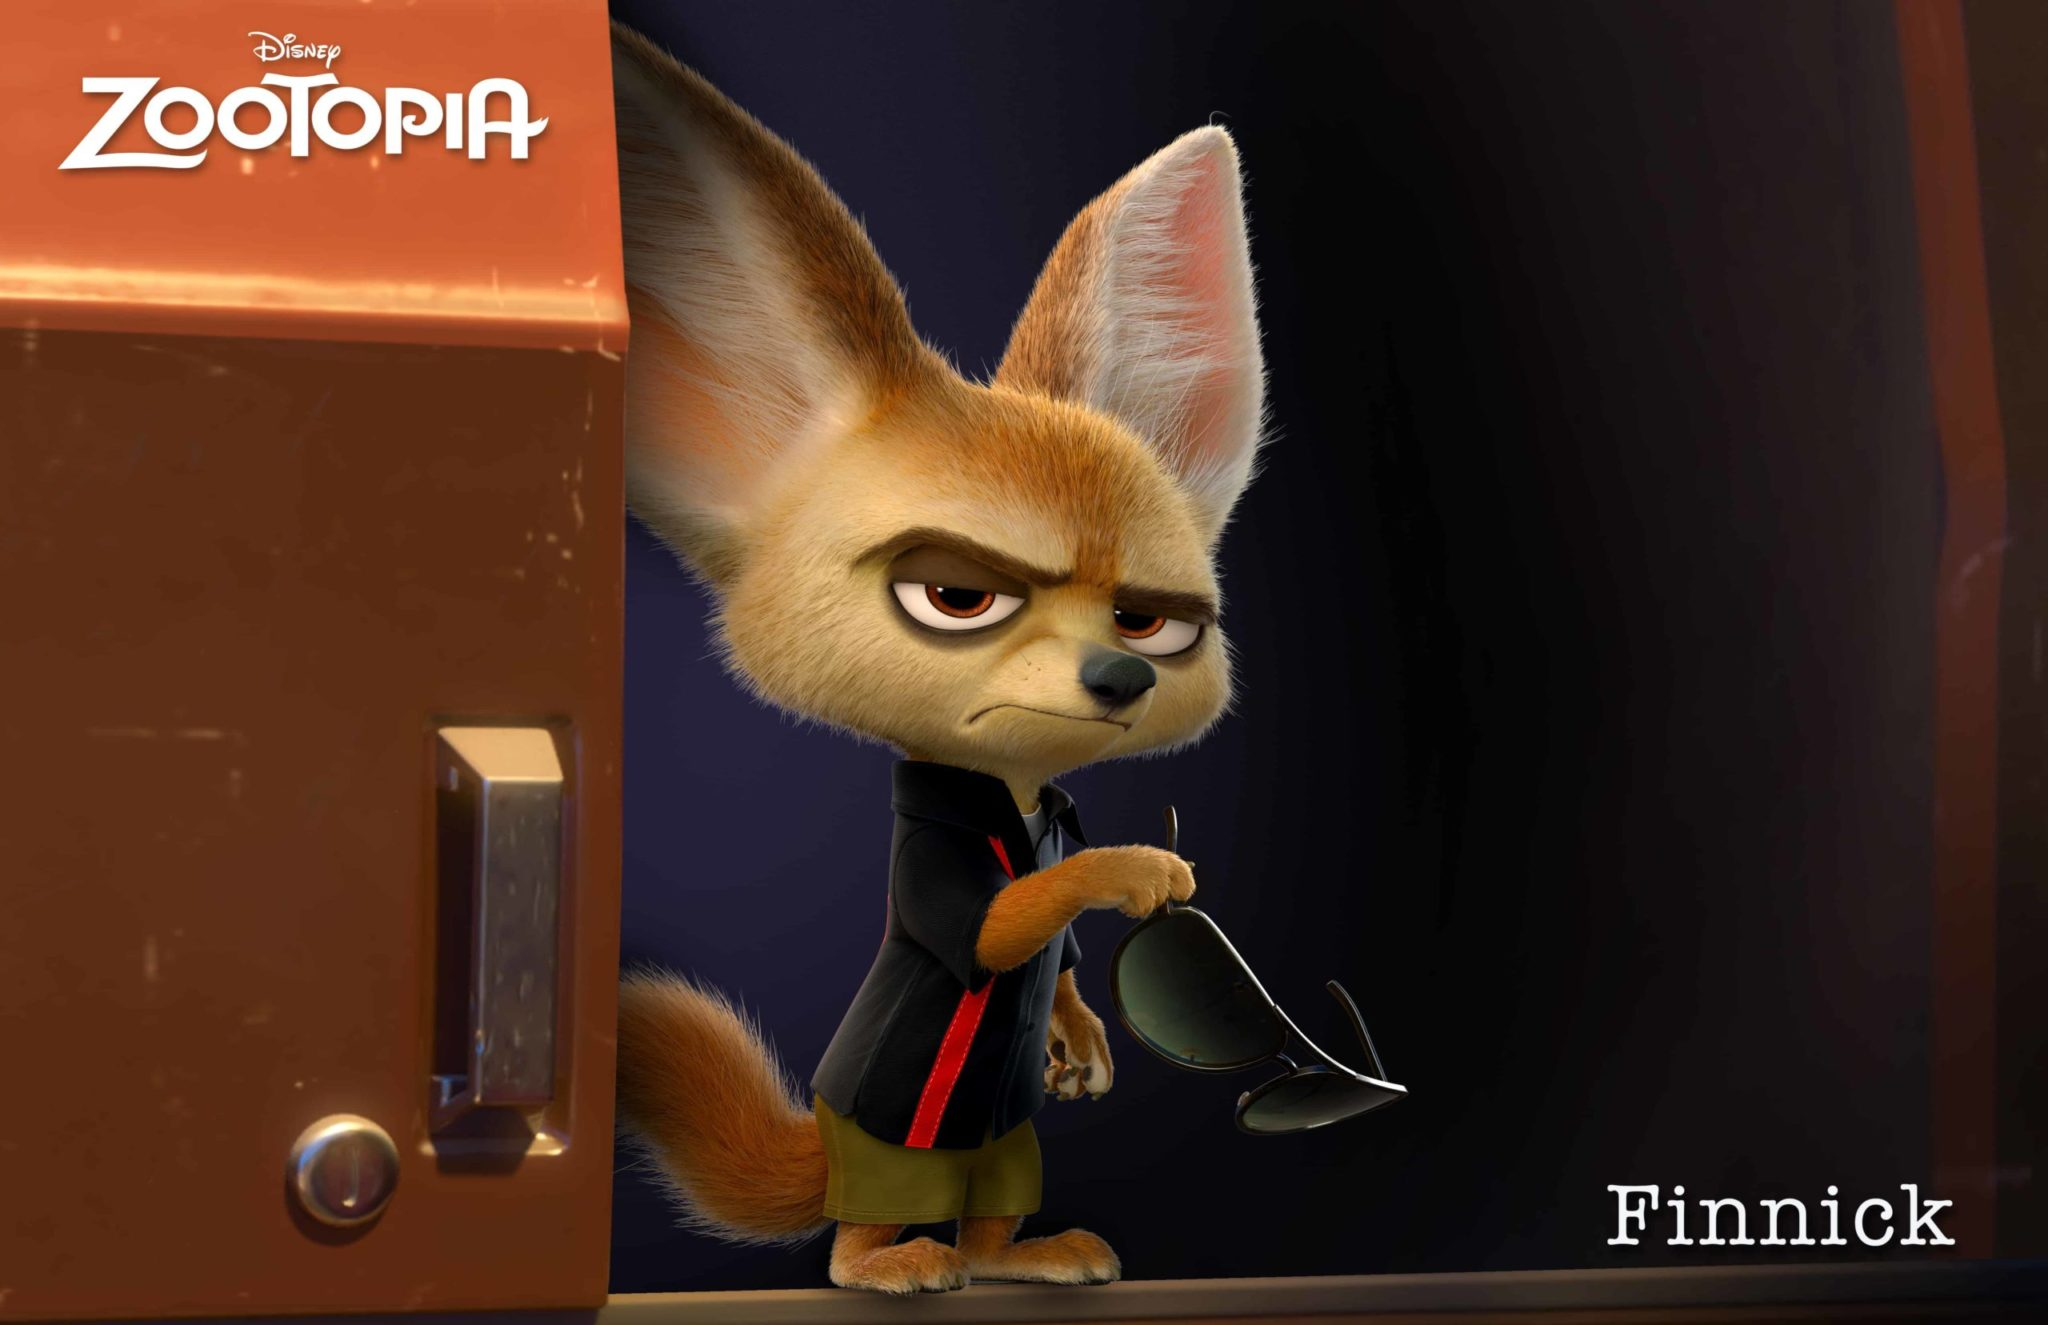 ZOOTOPIA – FINNICK, a fennec fox with a big chip on his adorable shoulder. ©2015 Disney. All Rights Reserved.